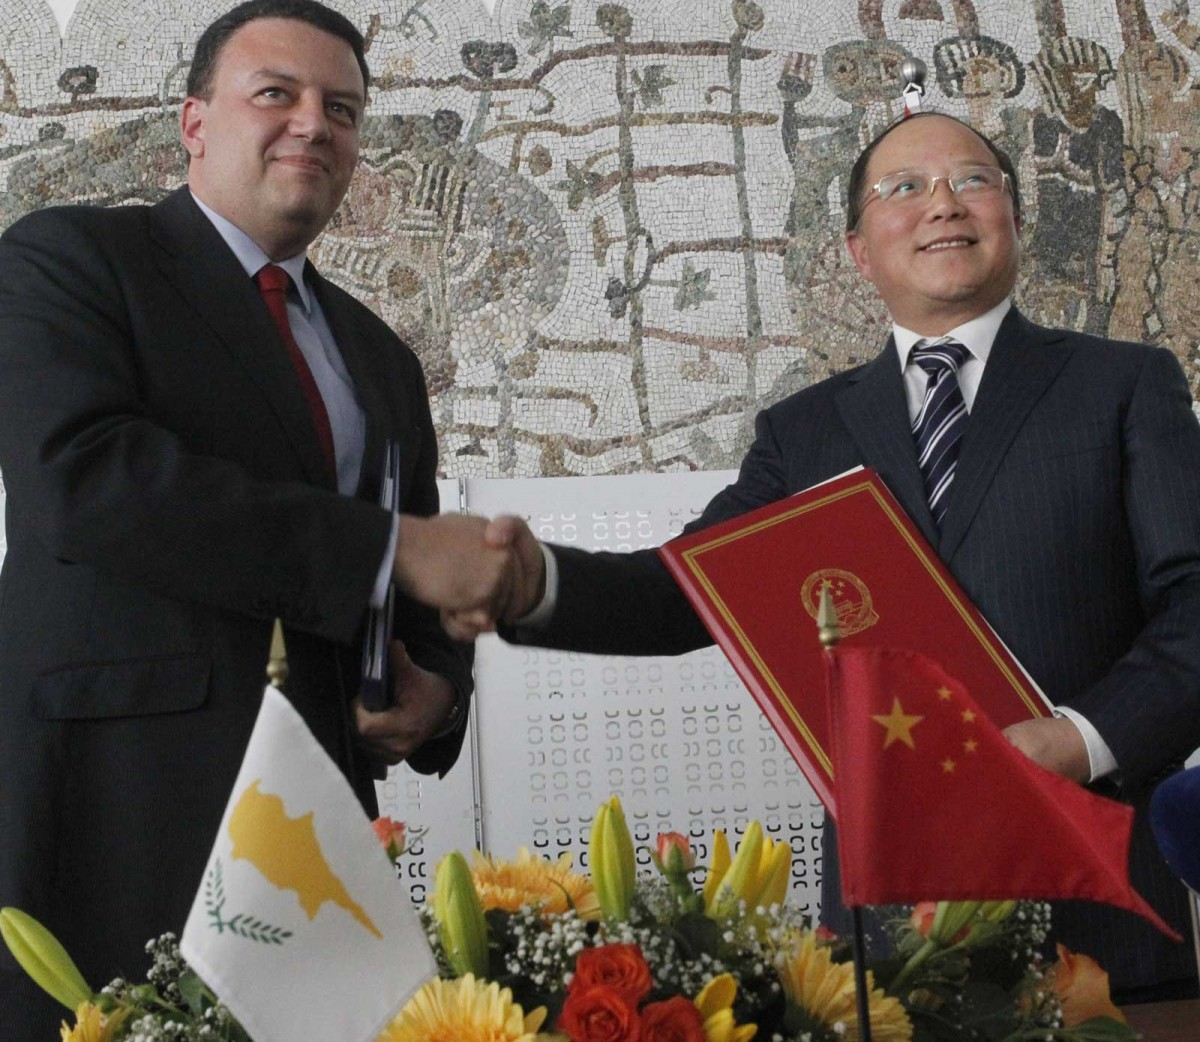 Signing of an agreement of cooperation between Cyprus and China for the prevention of theft, clandestine excavations and the illegal import and export of cultural goods between the two countries.